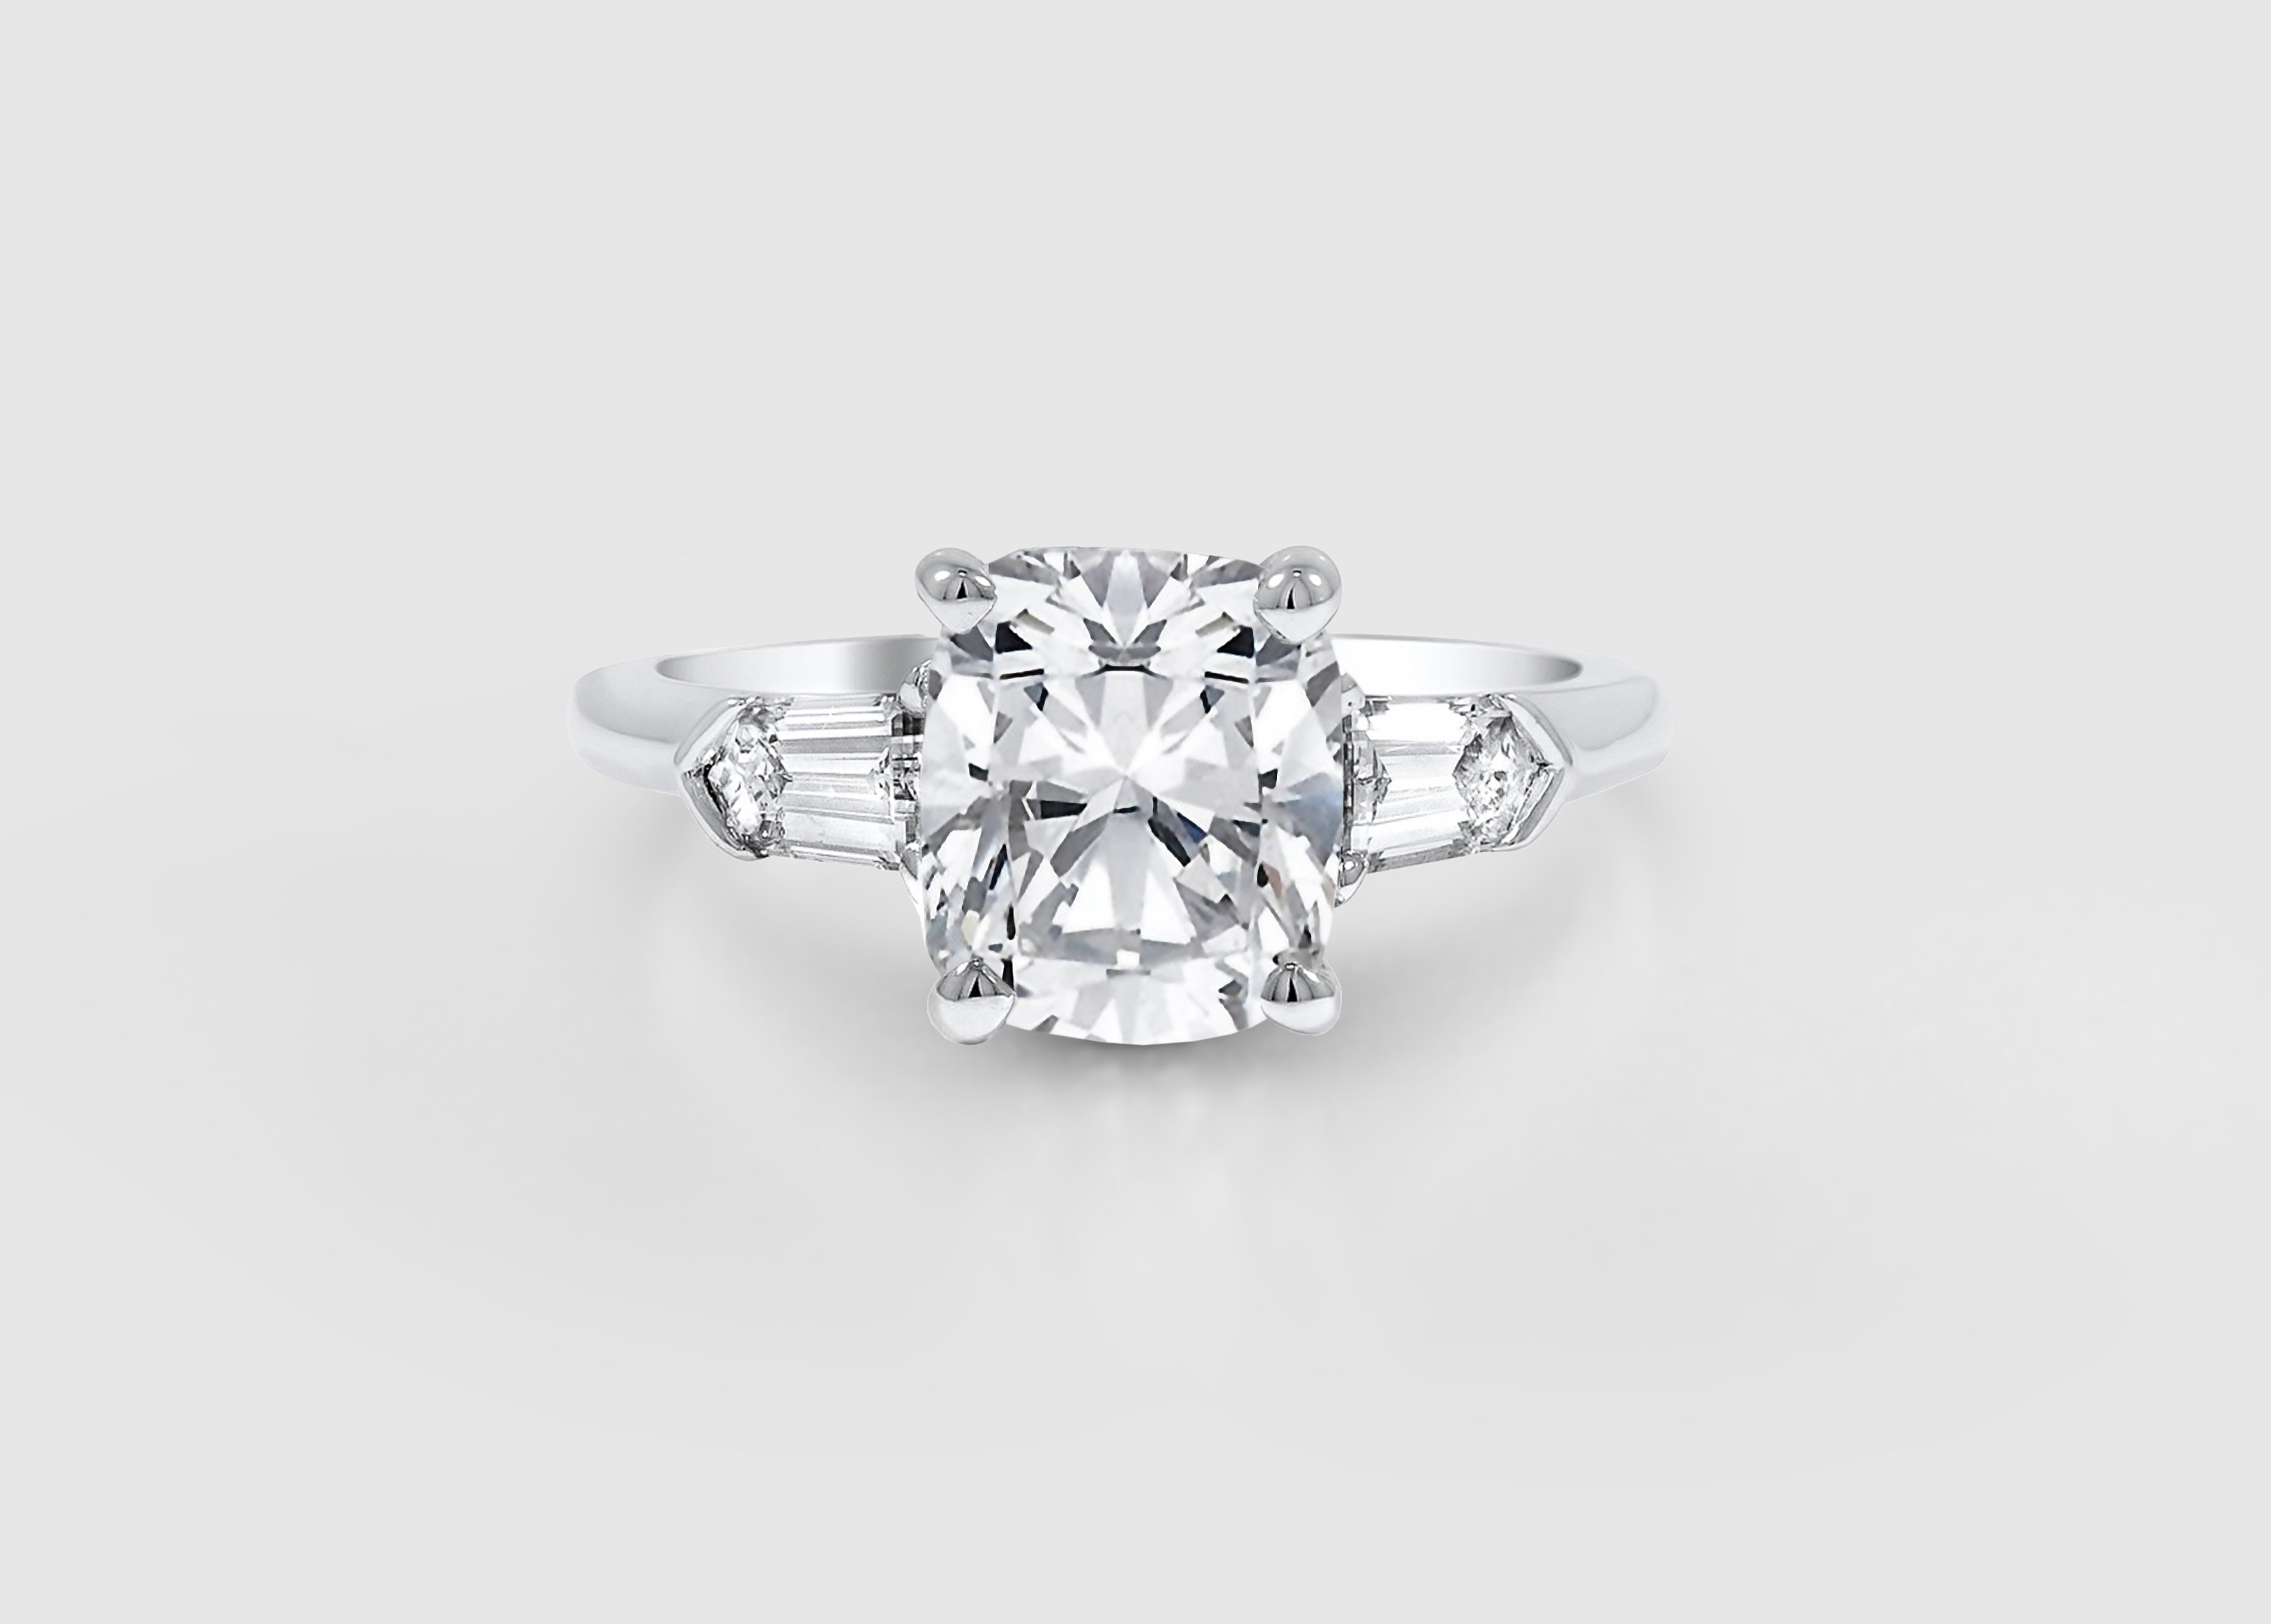 rings miadonna made diamond engagement of man sets wedding ideas oval blog within archives best